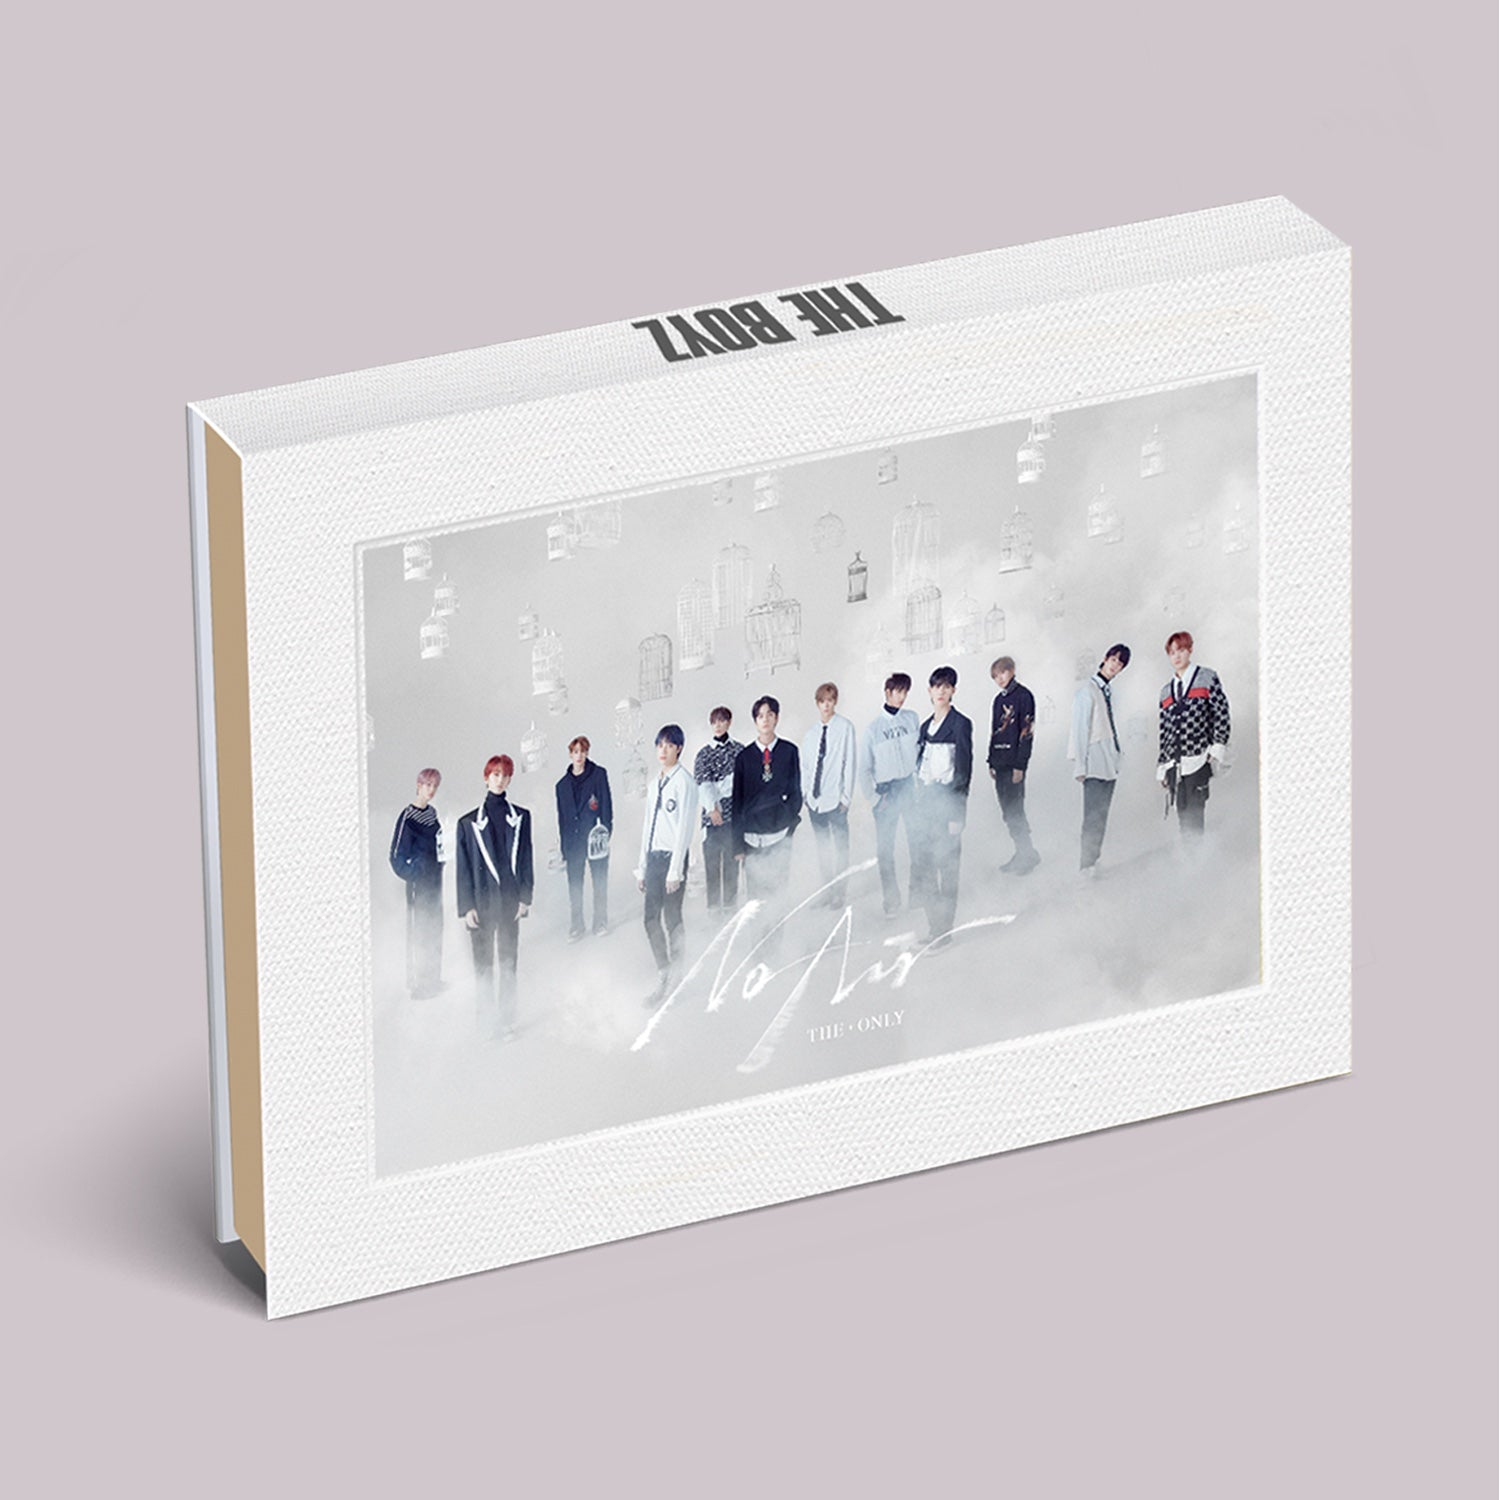 THE BOYZ 3RD MINI ALBUM 'THE ONLY'